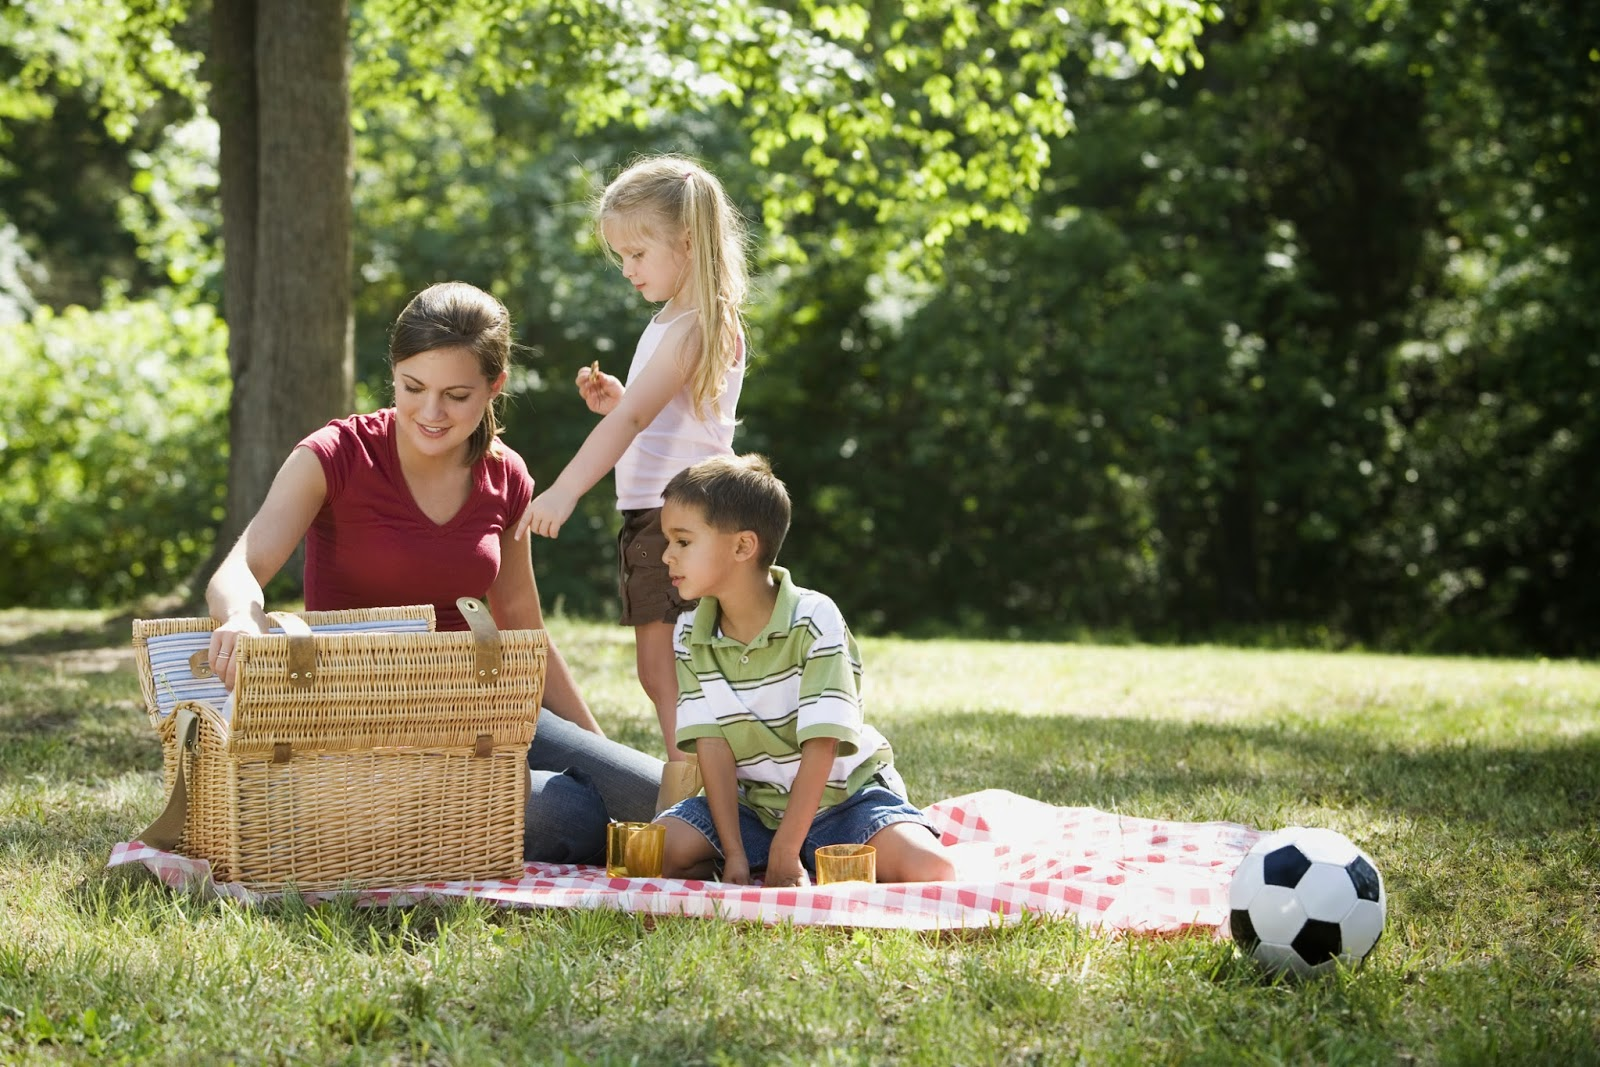 Why Is Summer Vacation important for Kids to have?